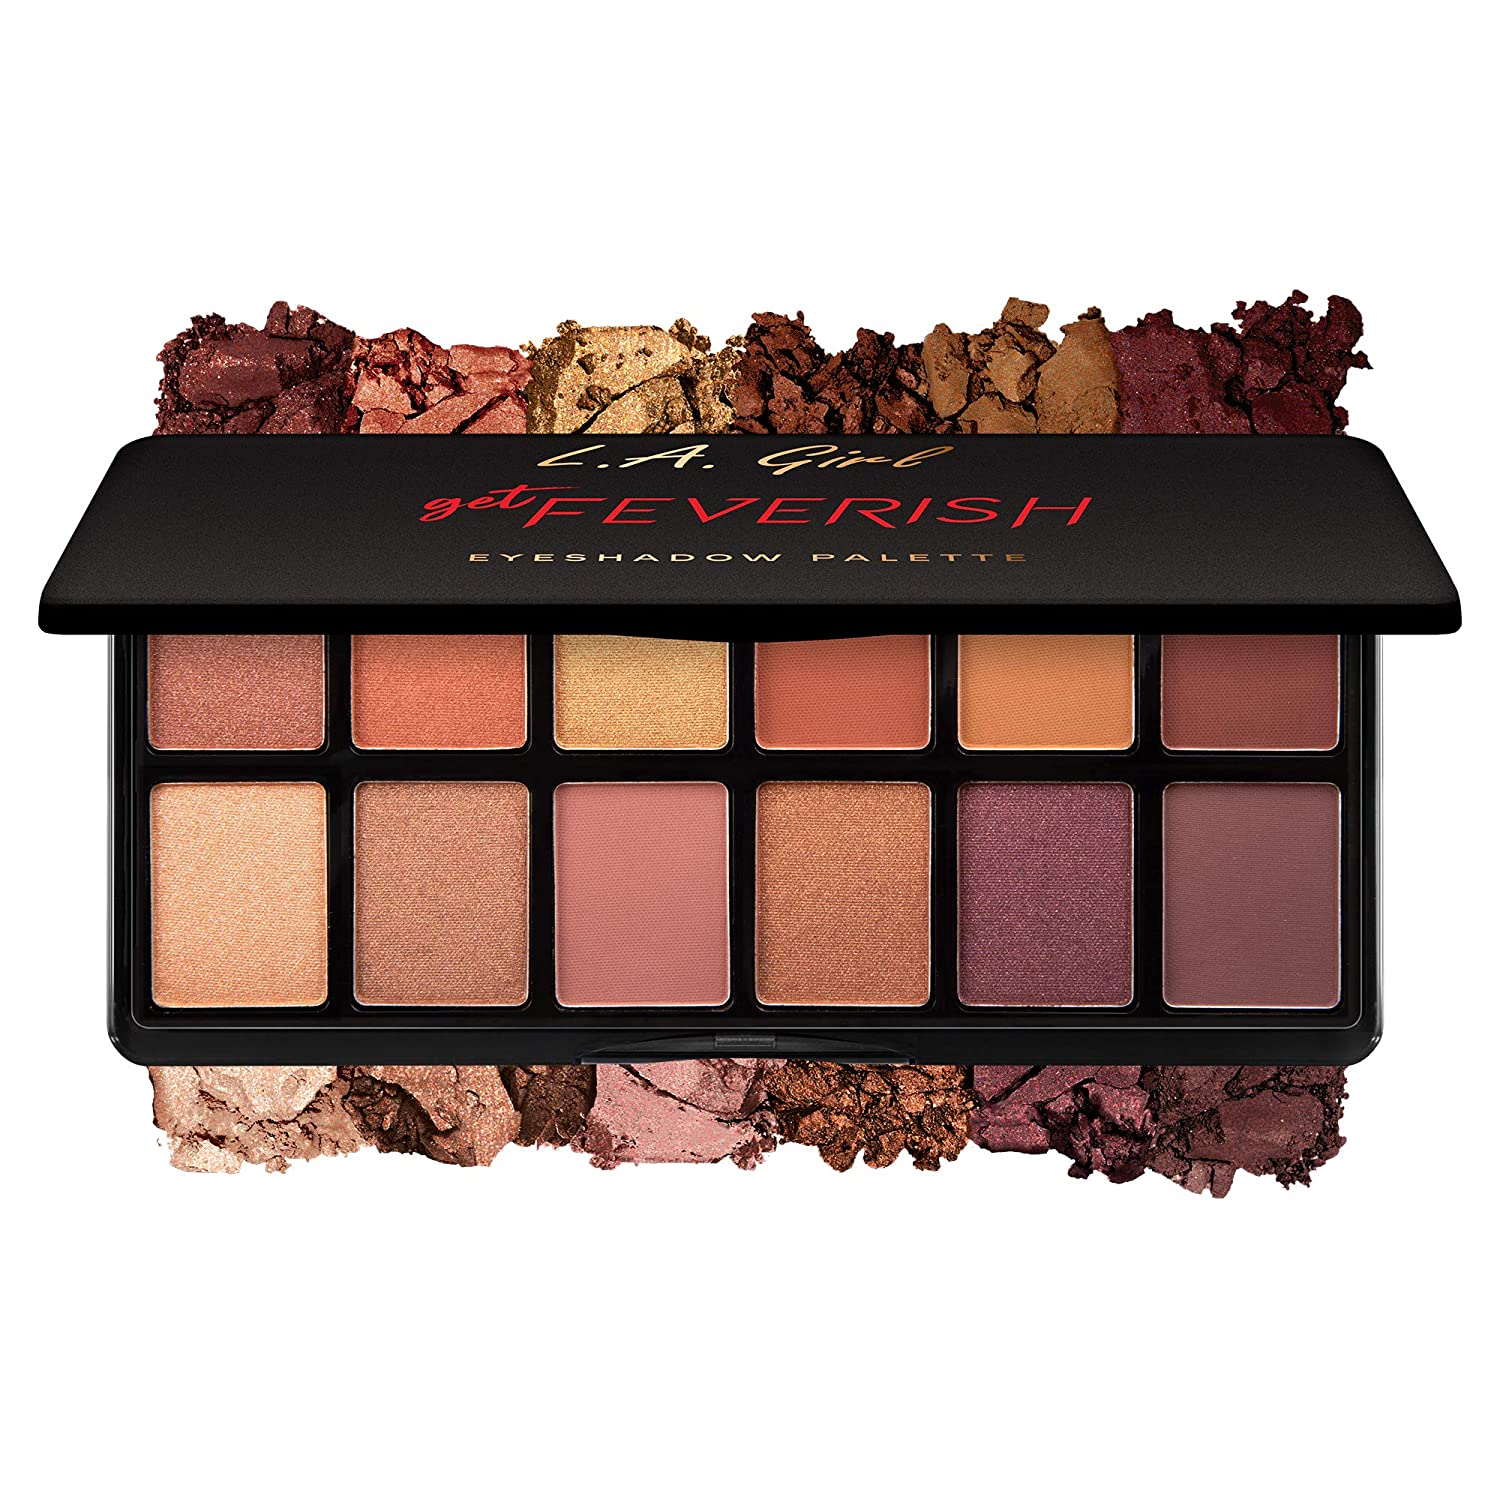 L.A Girl Fanatic Eyeshadow Palette - Best Matte Eyeshadow Palette Drugstore